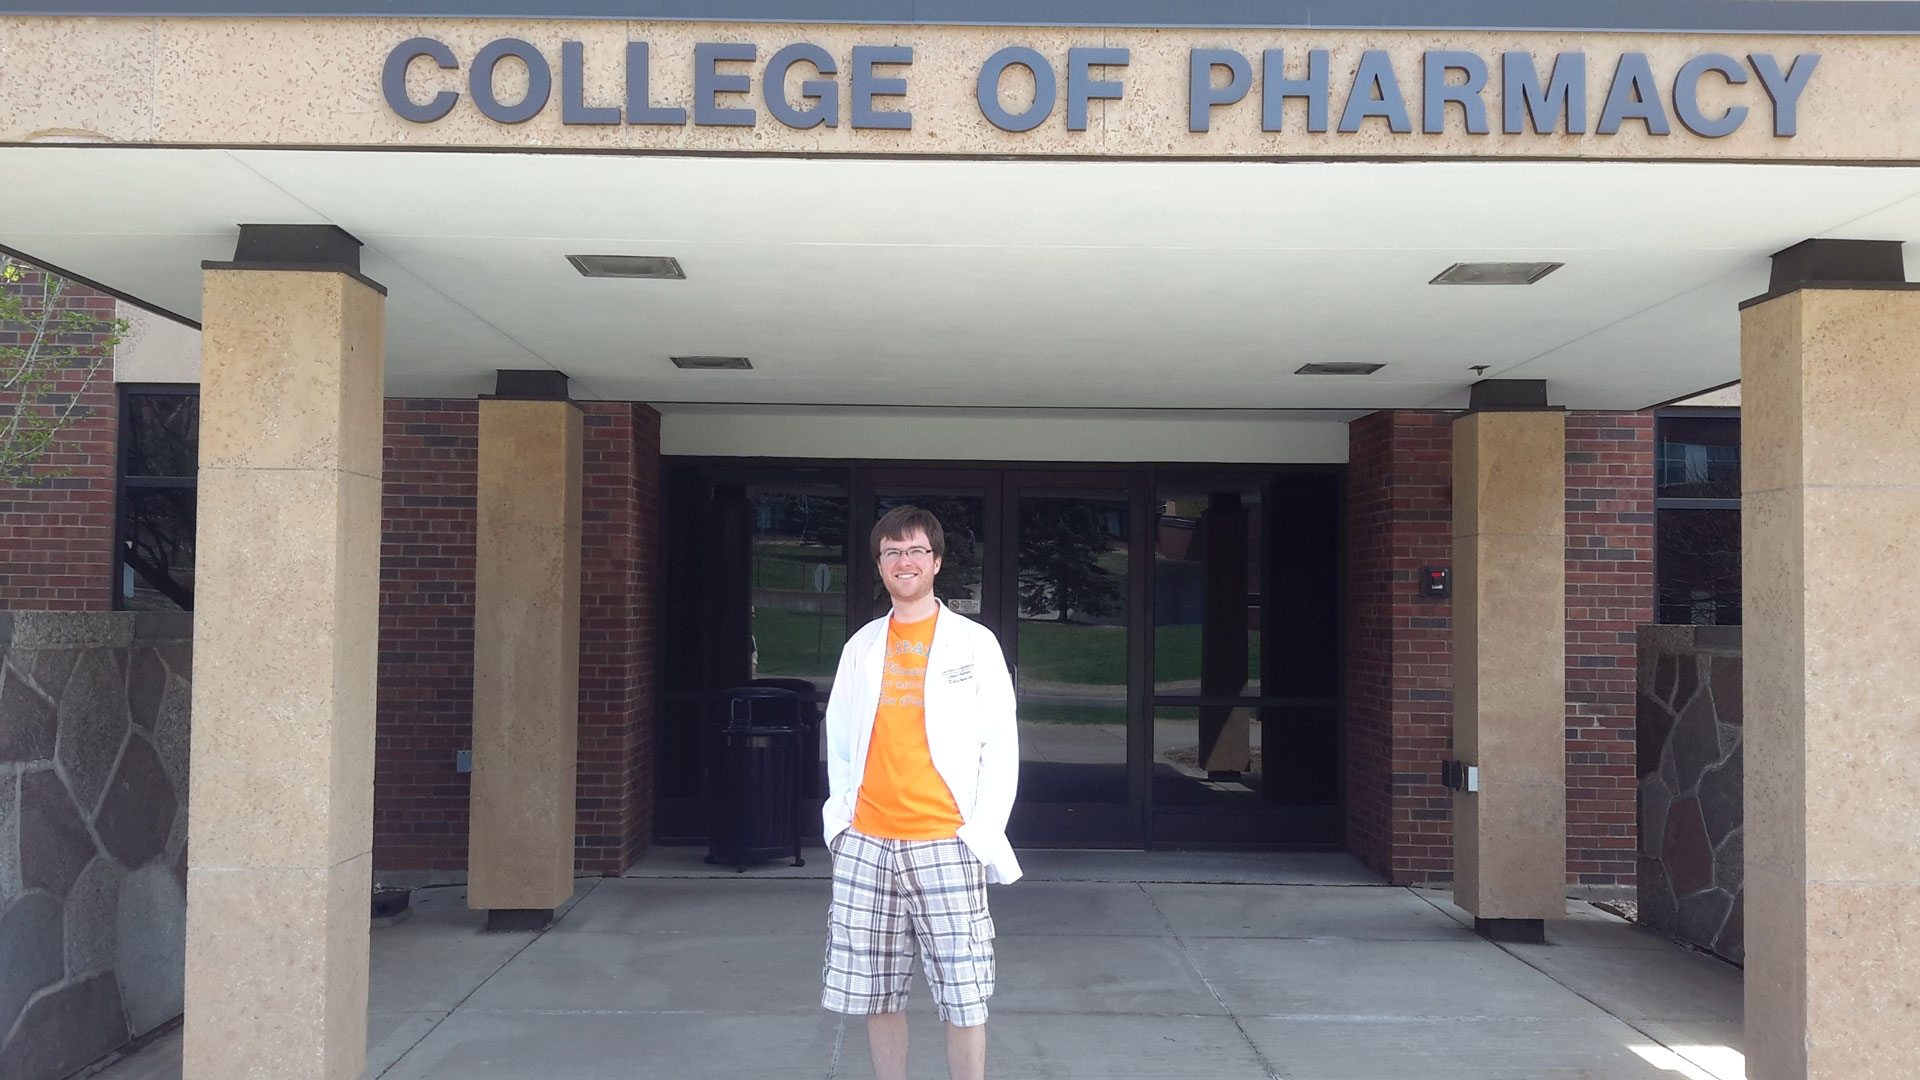 I want to become a Pharmacist! What should I major and minor in?